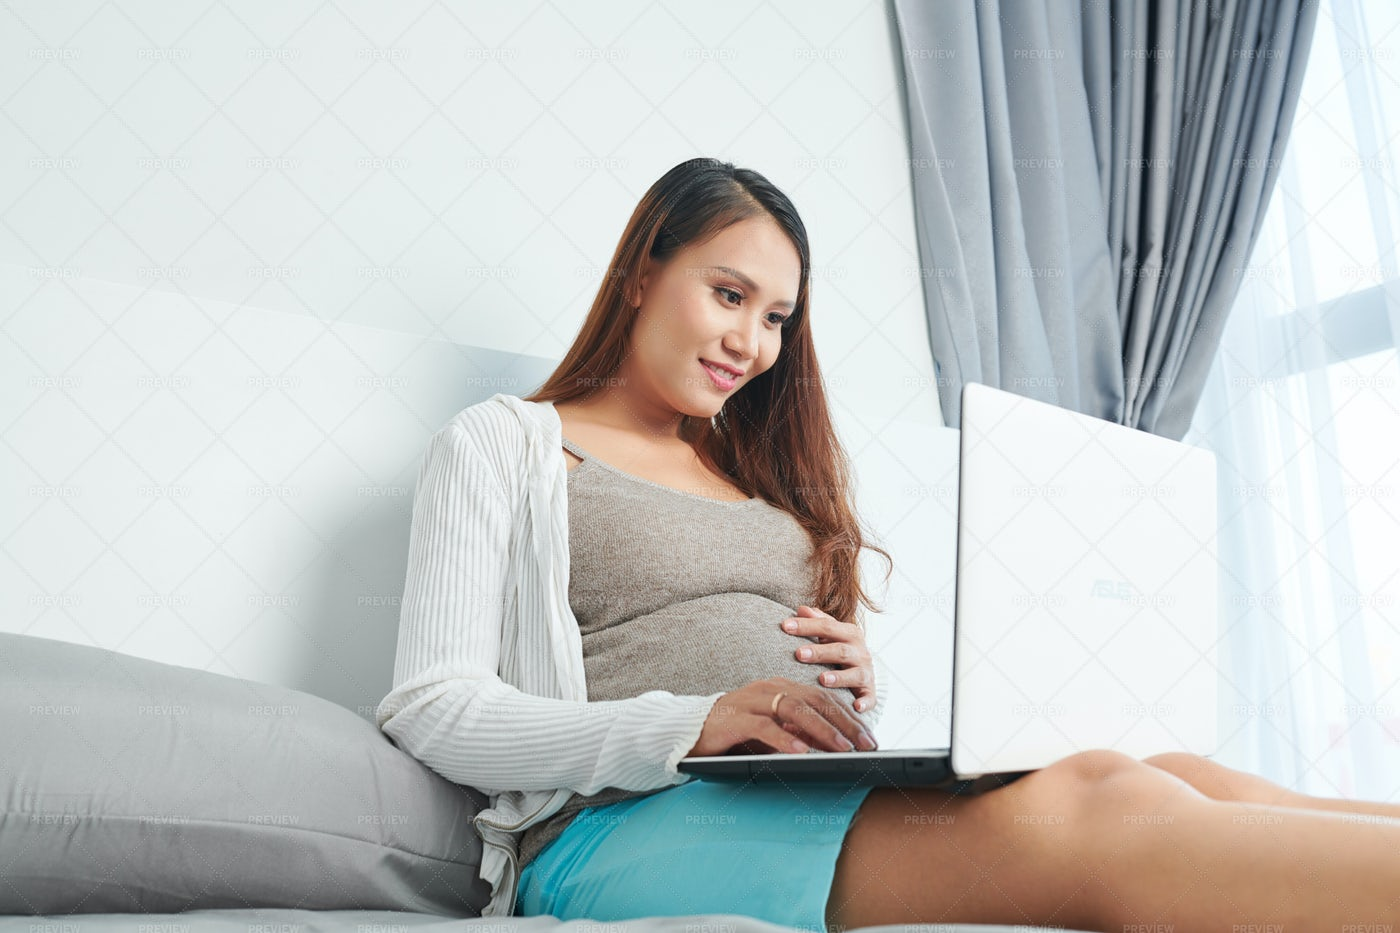 Woman Reading About Pregnancy: Stock Photos